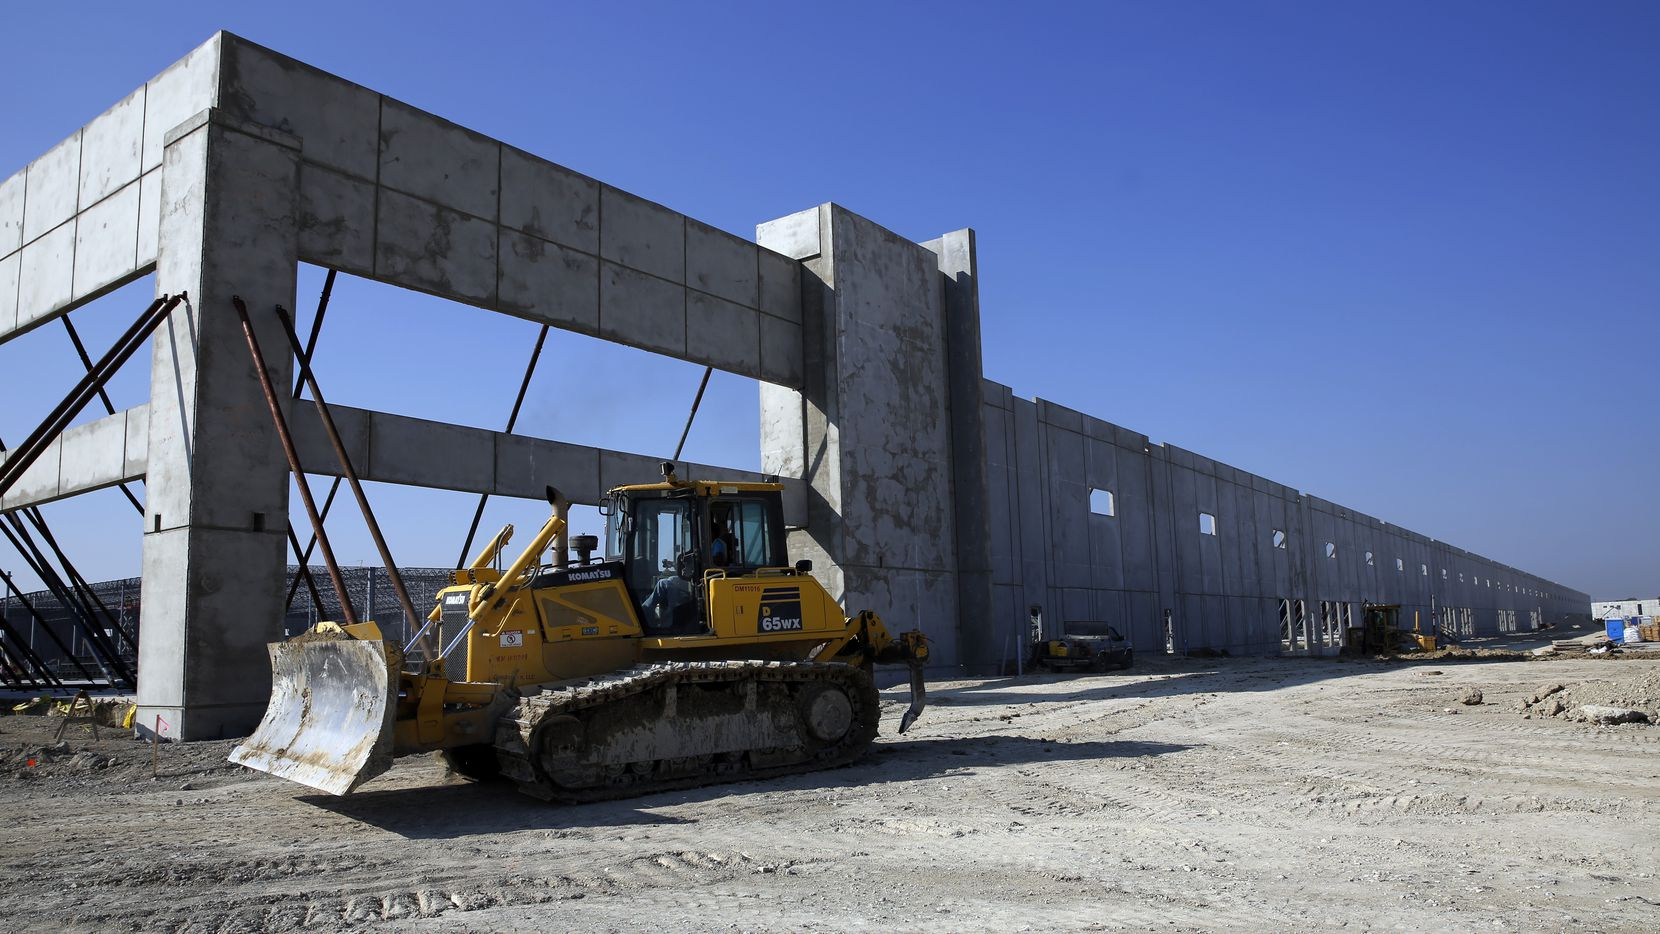 More than 27 million square feet of warehouses are being built in North Texas.